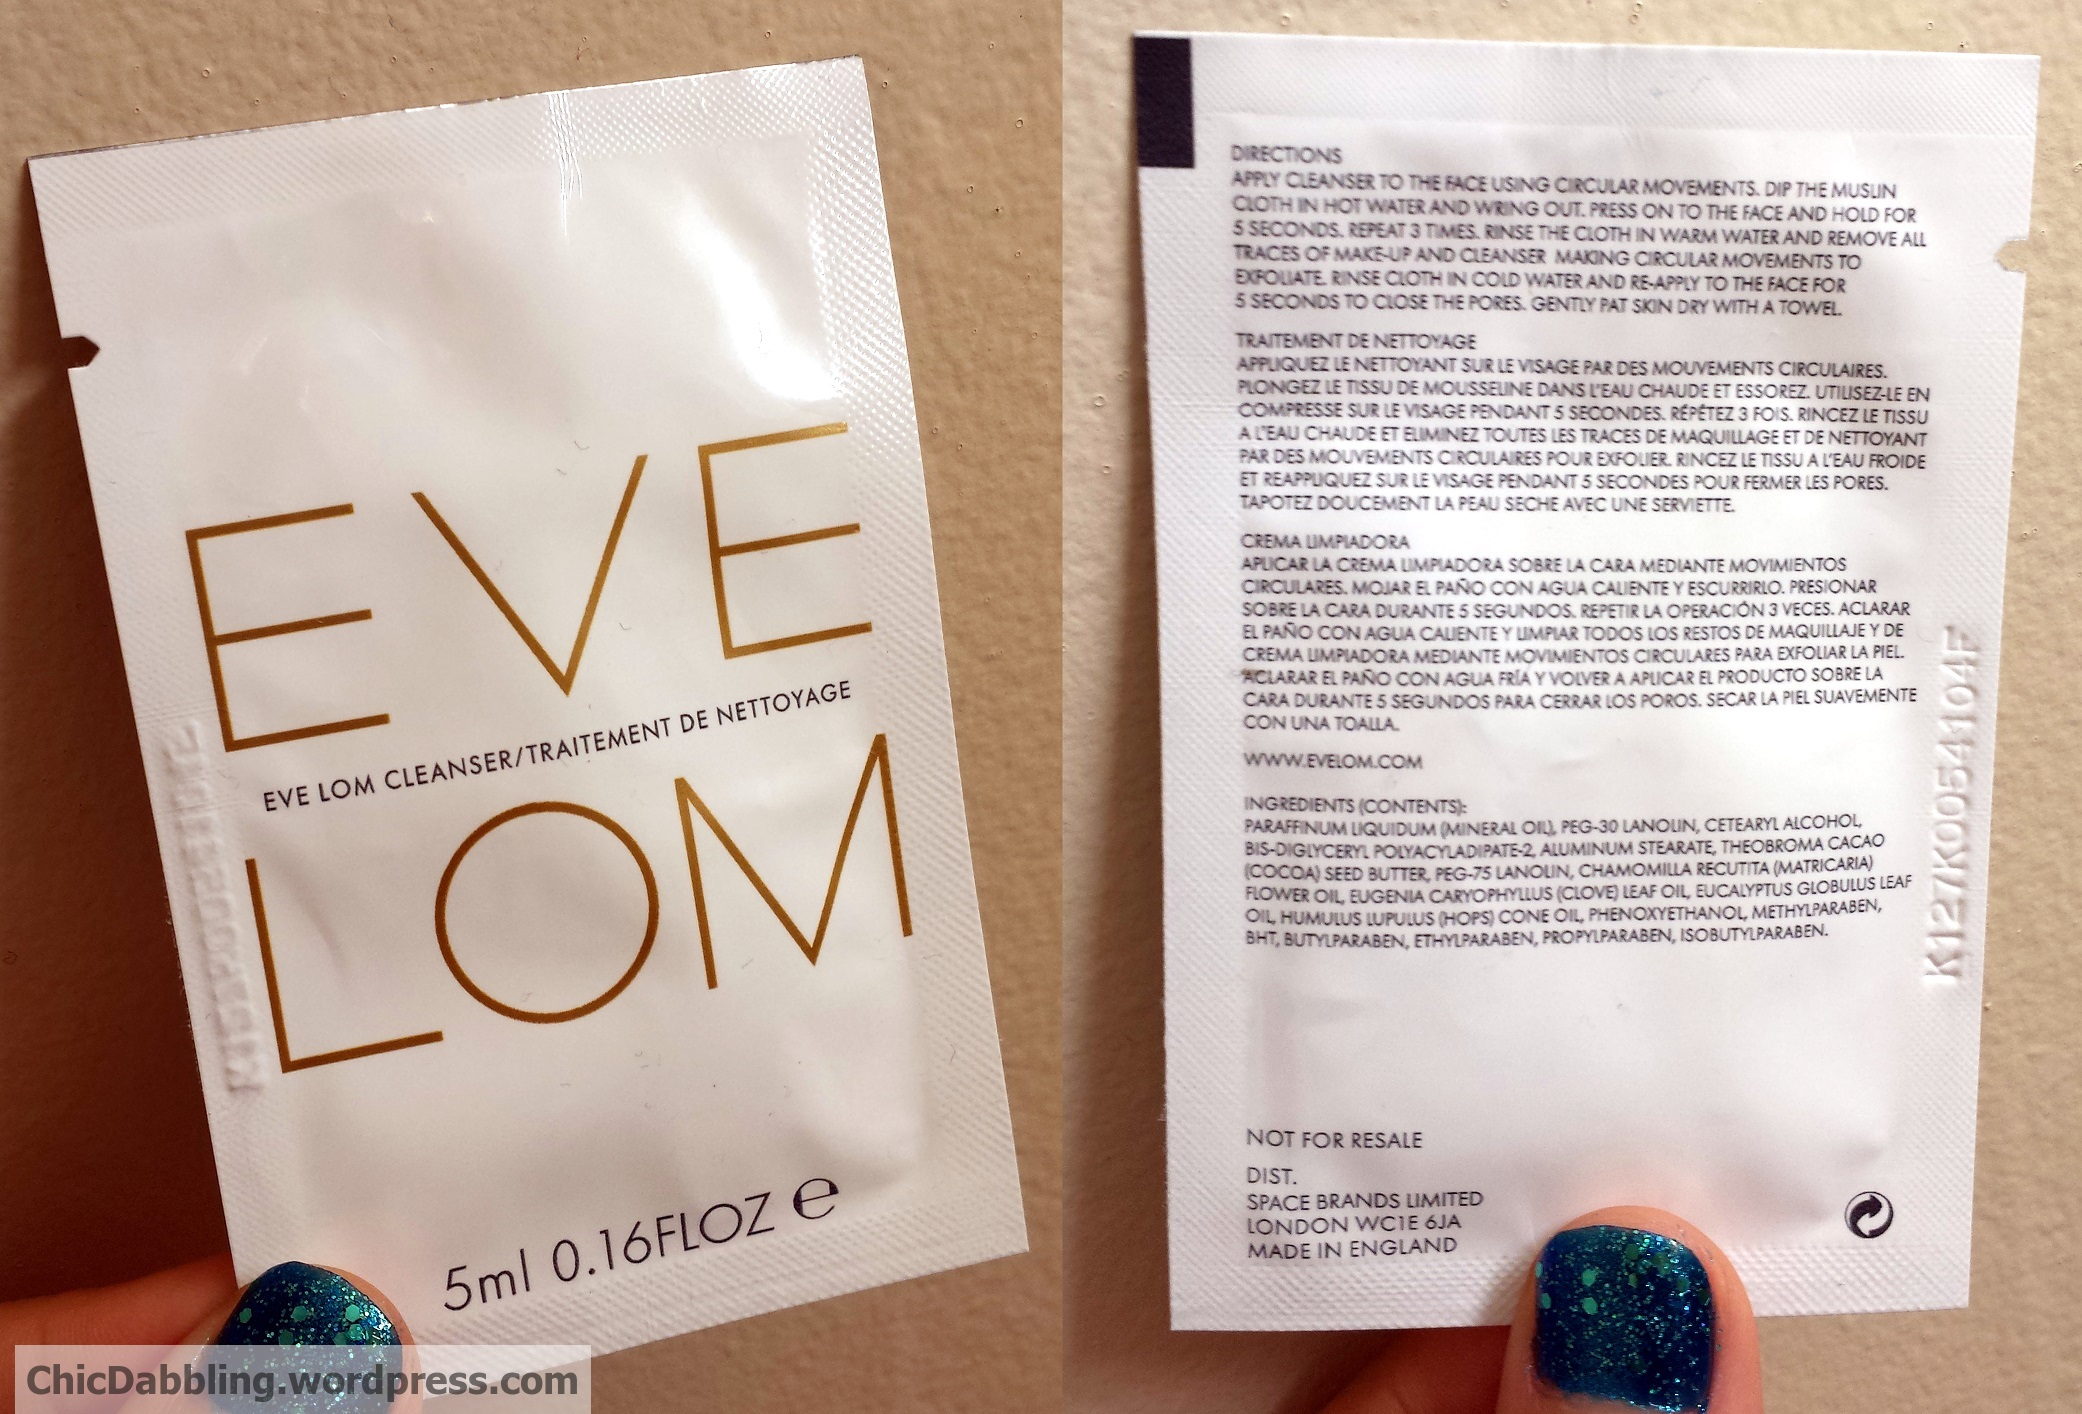 eve lom cleanser instructions